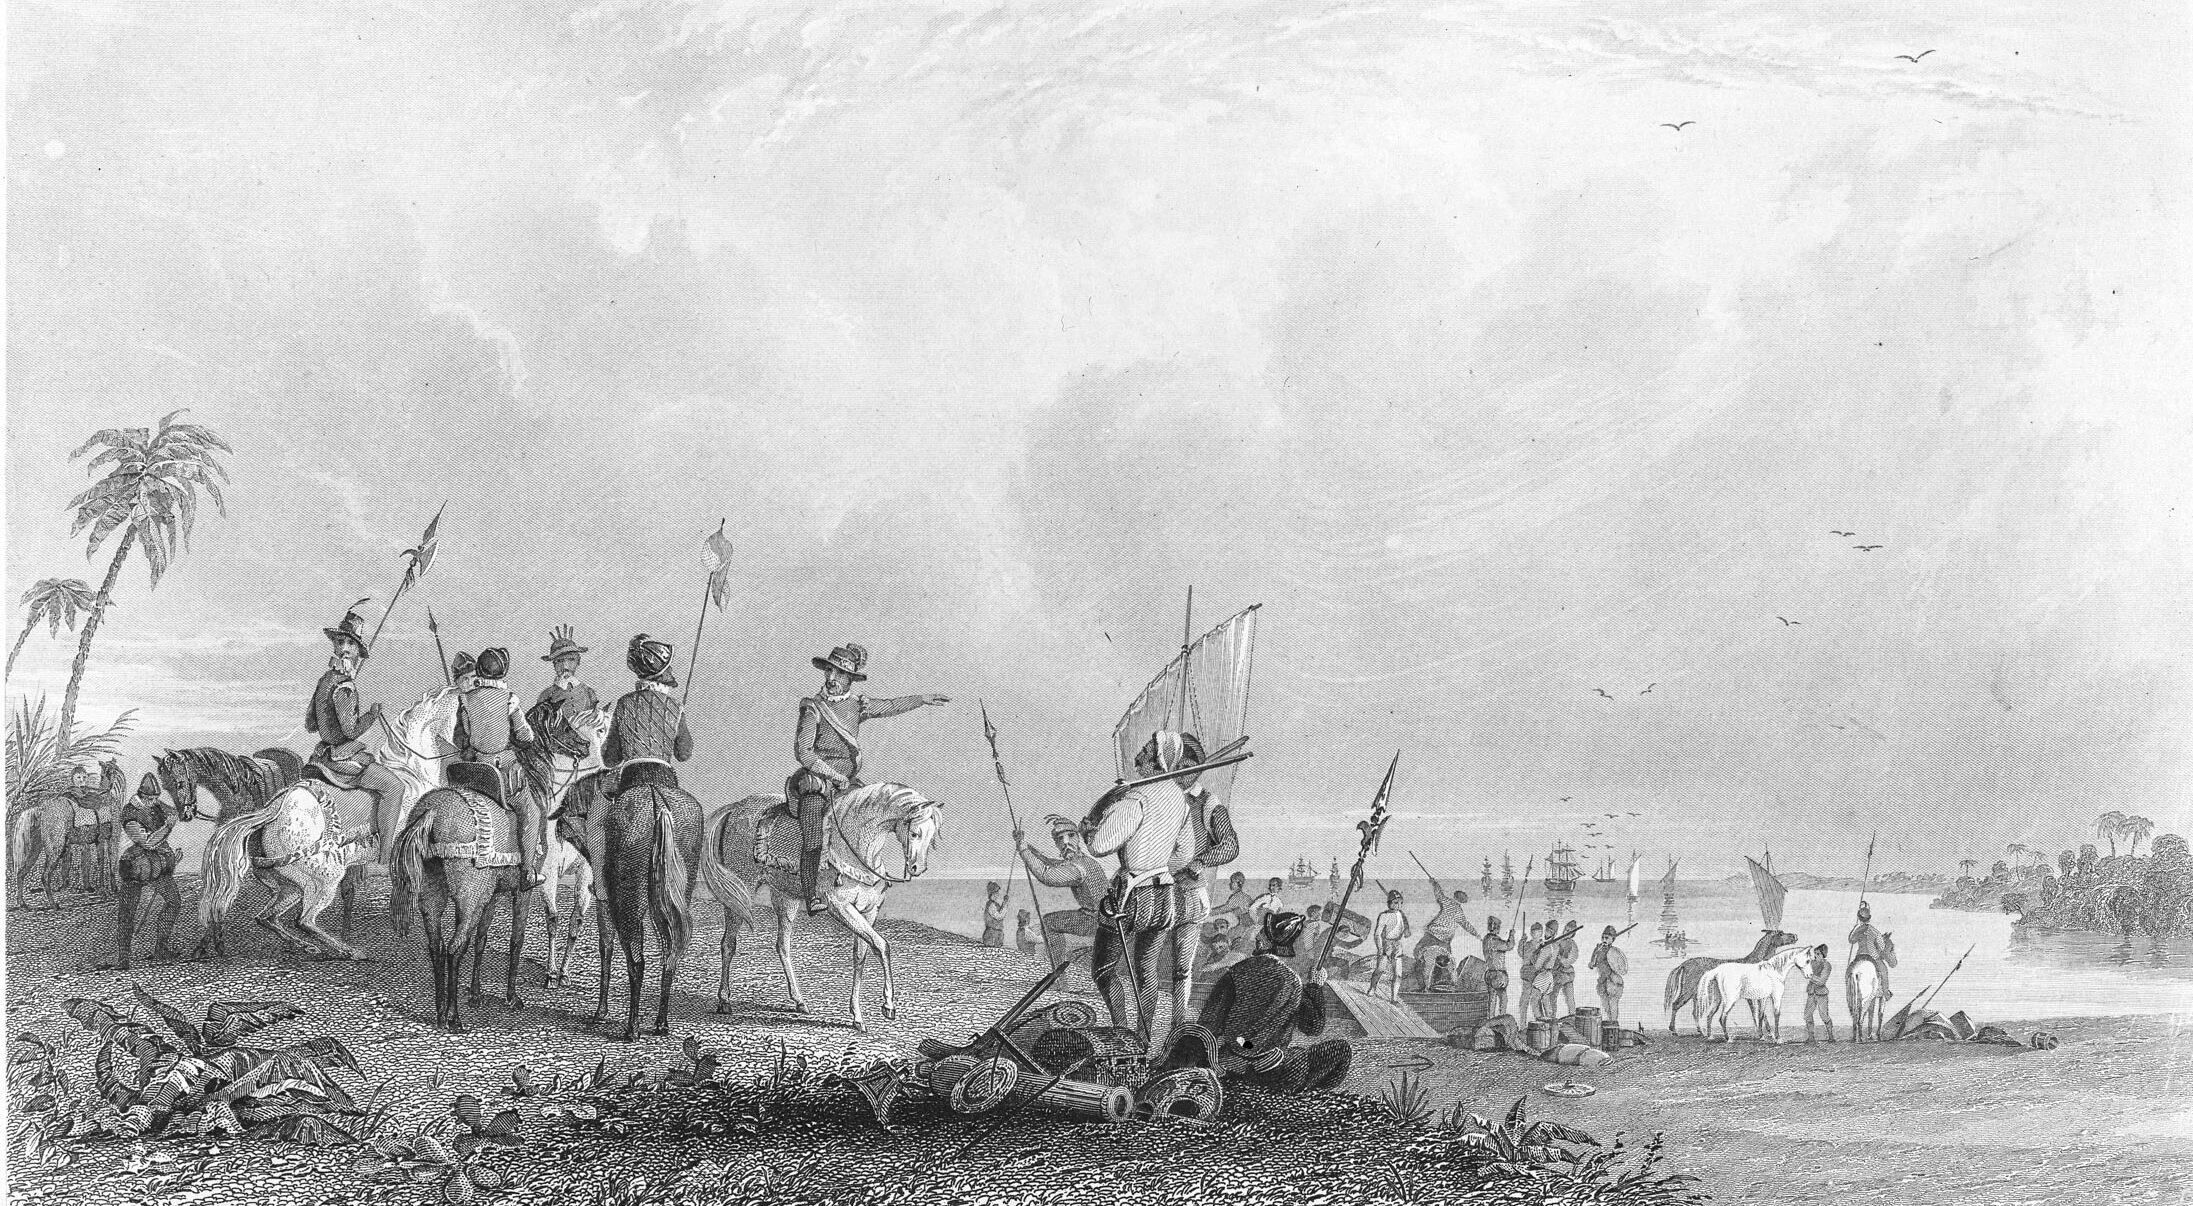 Print shows Hernando De Soto and other soldiers at Tampa Bay.